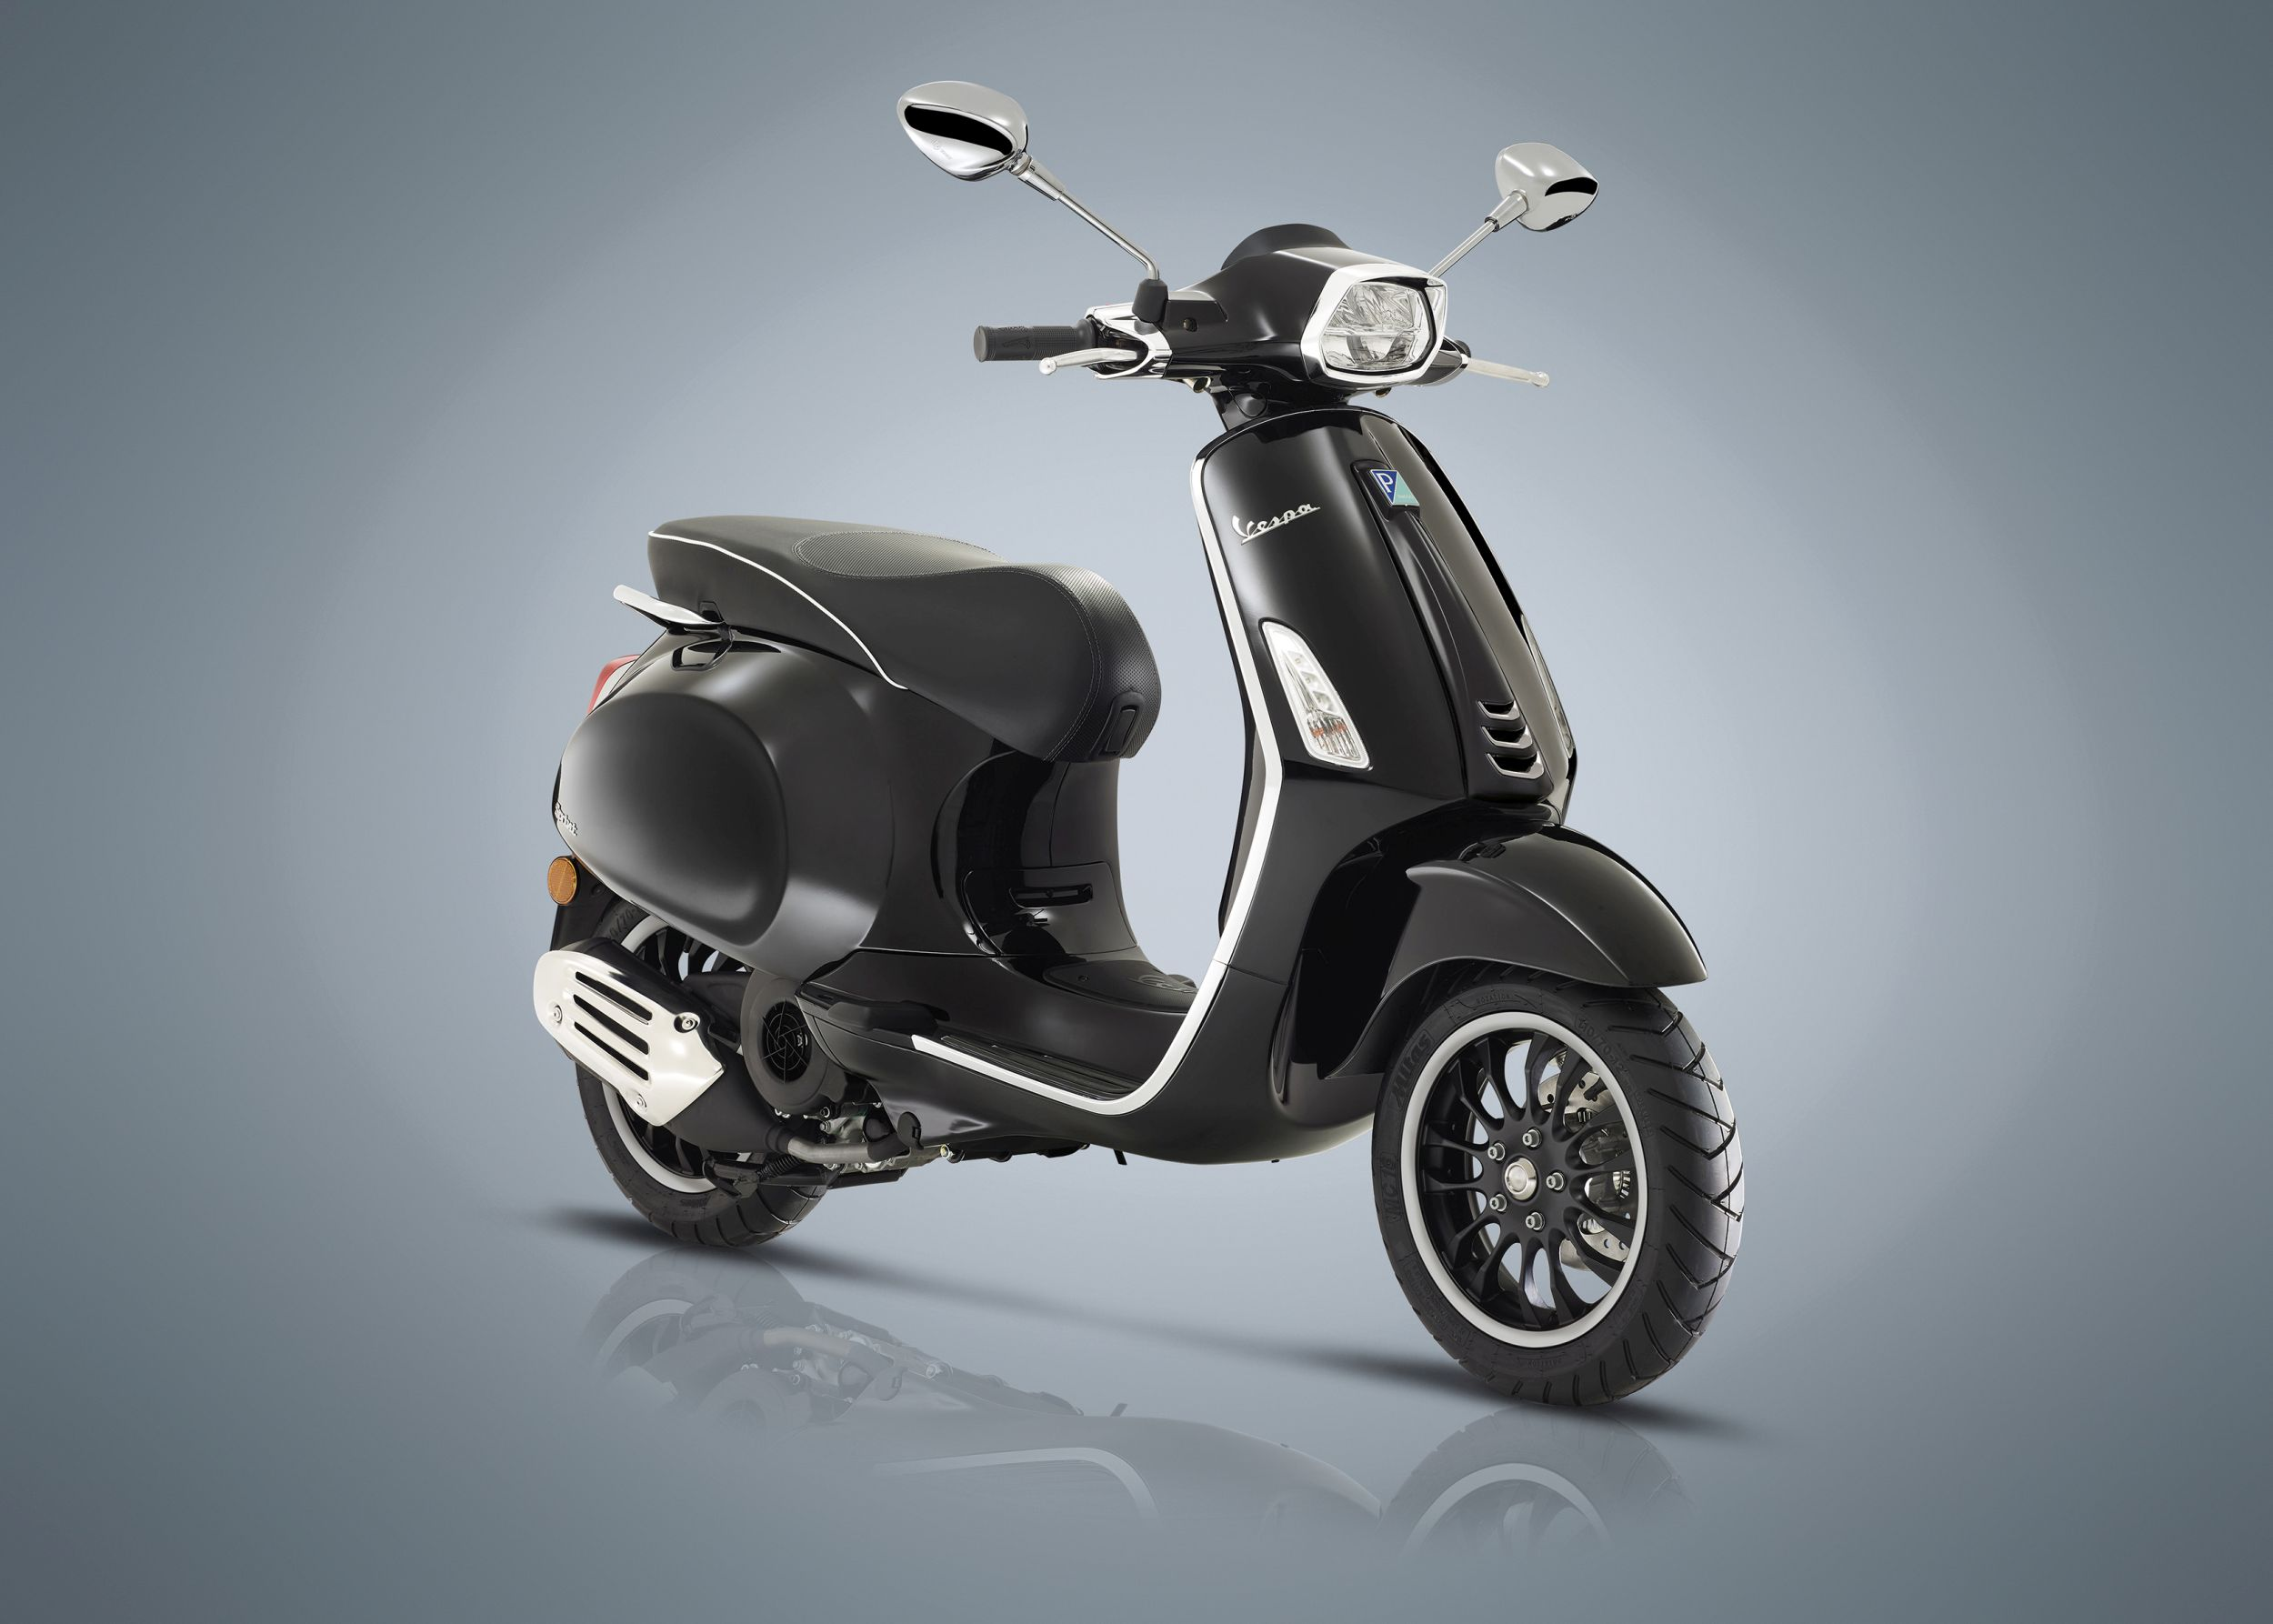 motorrad occasion vespa sprint 125 i e 3v kaufen. Black Bedroom Furniture Sets. Home Design Ideas